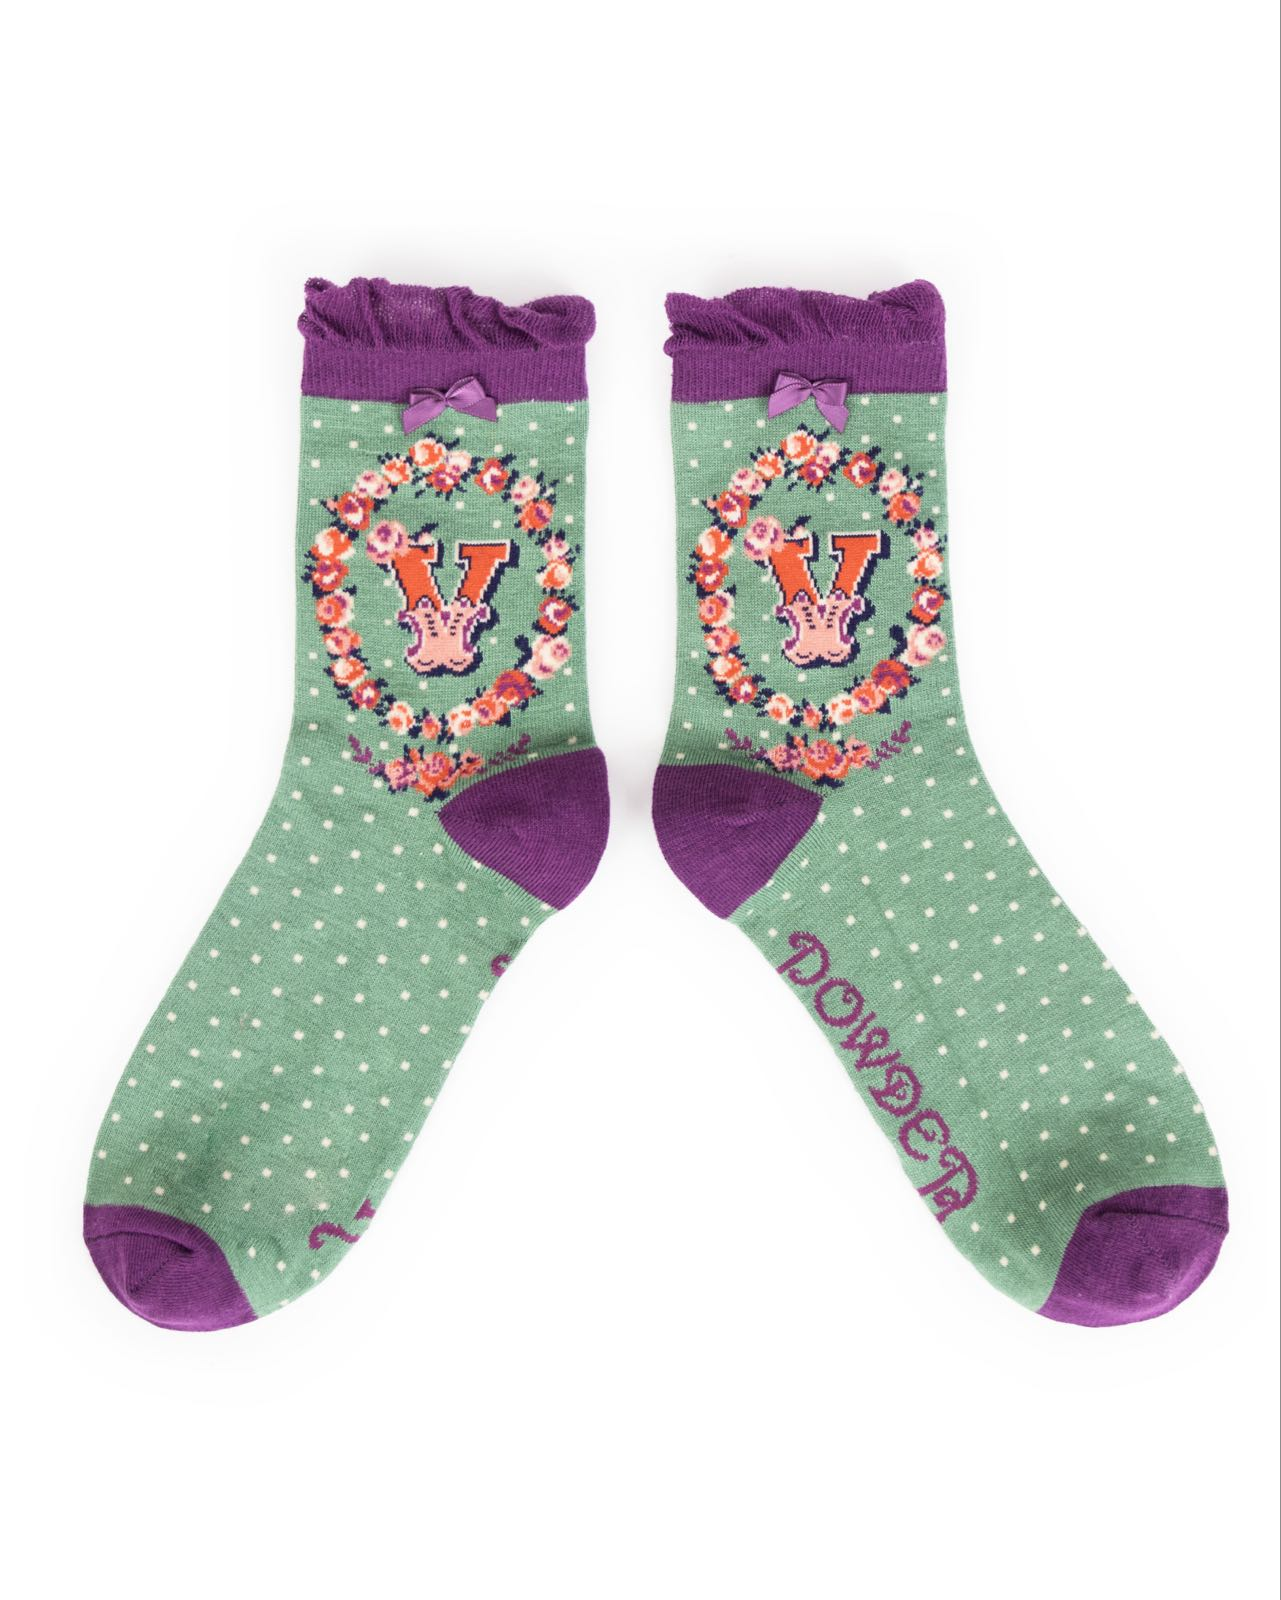 Powder Alphabet socks V (product may differ from item shown in the photo) 4-6 ladies